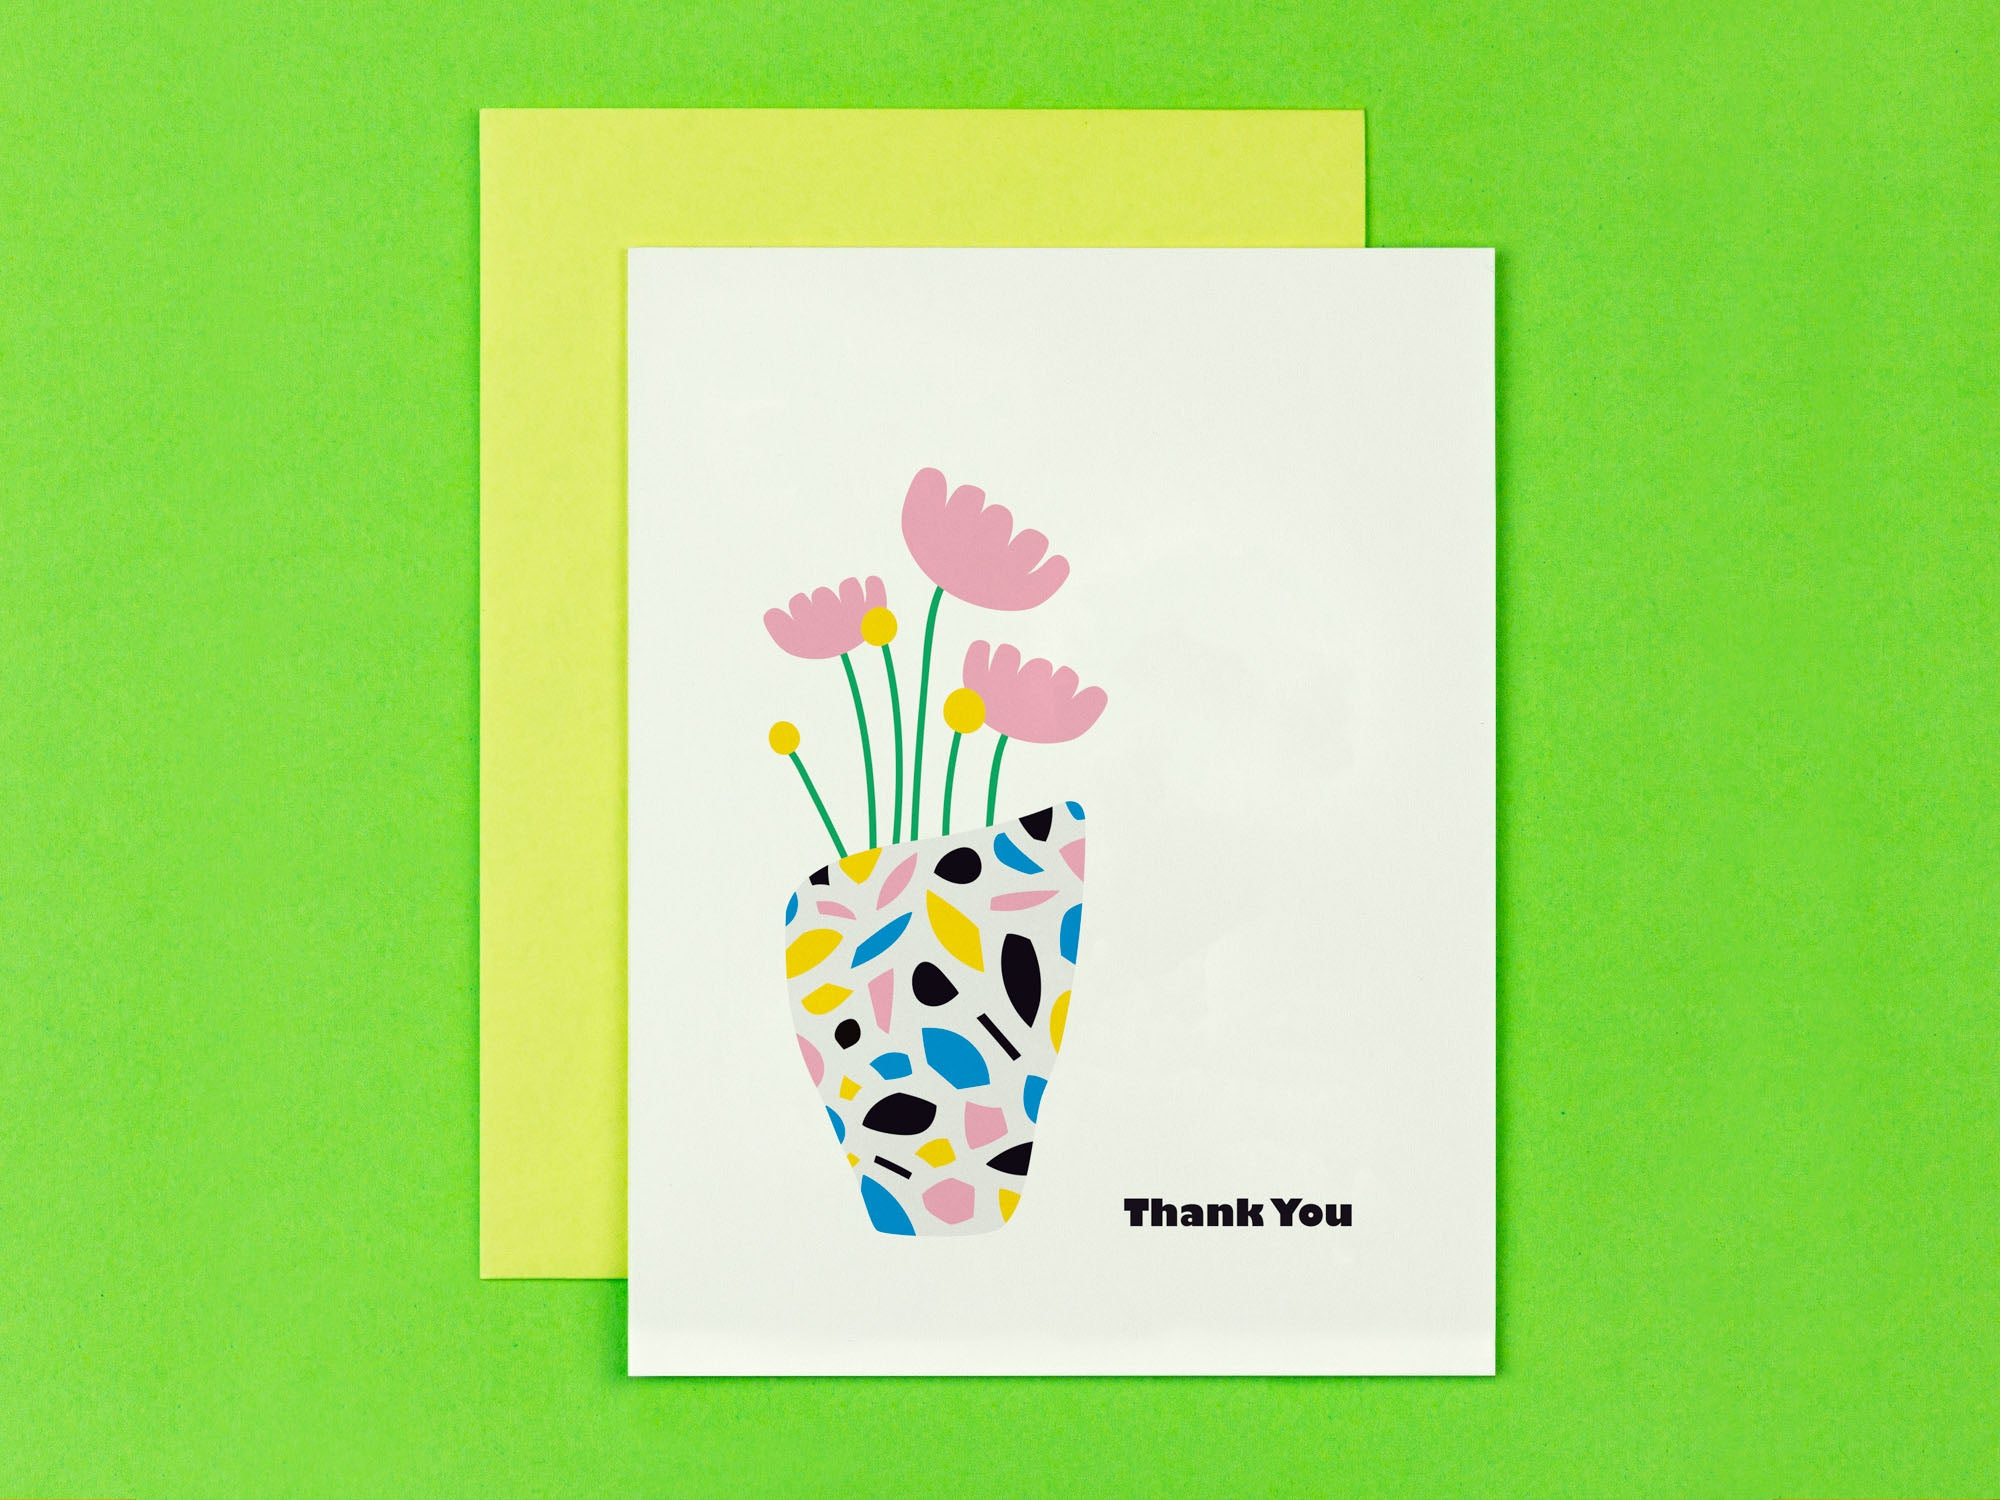 Thank you card with mid century style terrazzo flower vase illustration. Made in USA by My Darlin' @mydarlin_bk